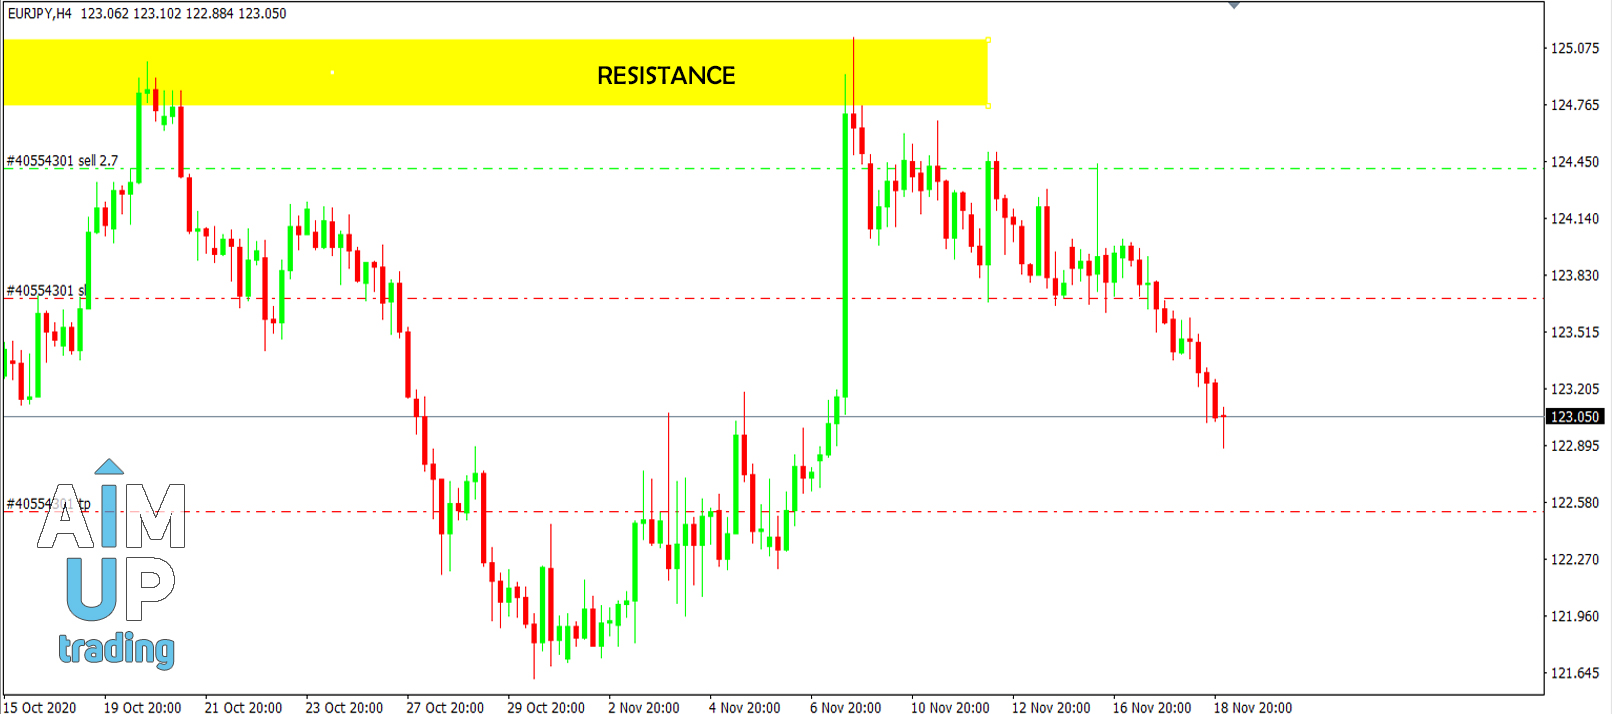 How-to-trade-resistance-and-support-in-forex-pdf